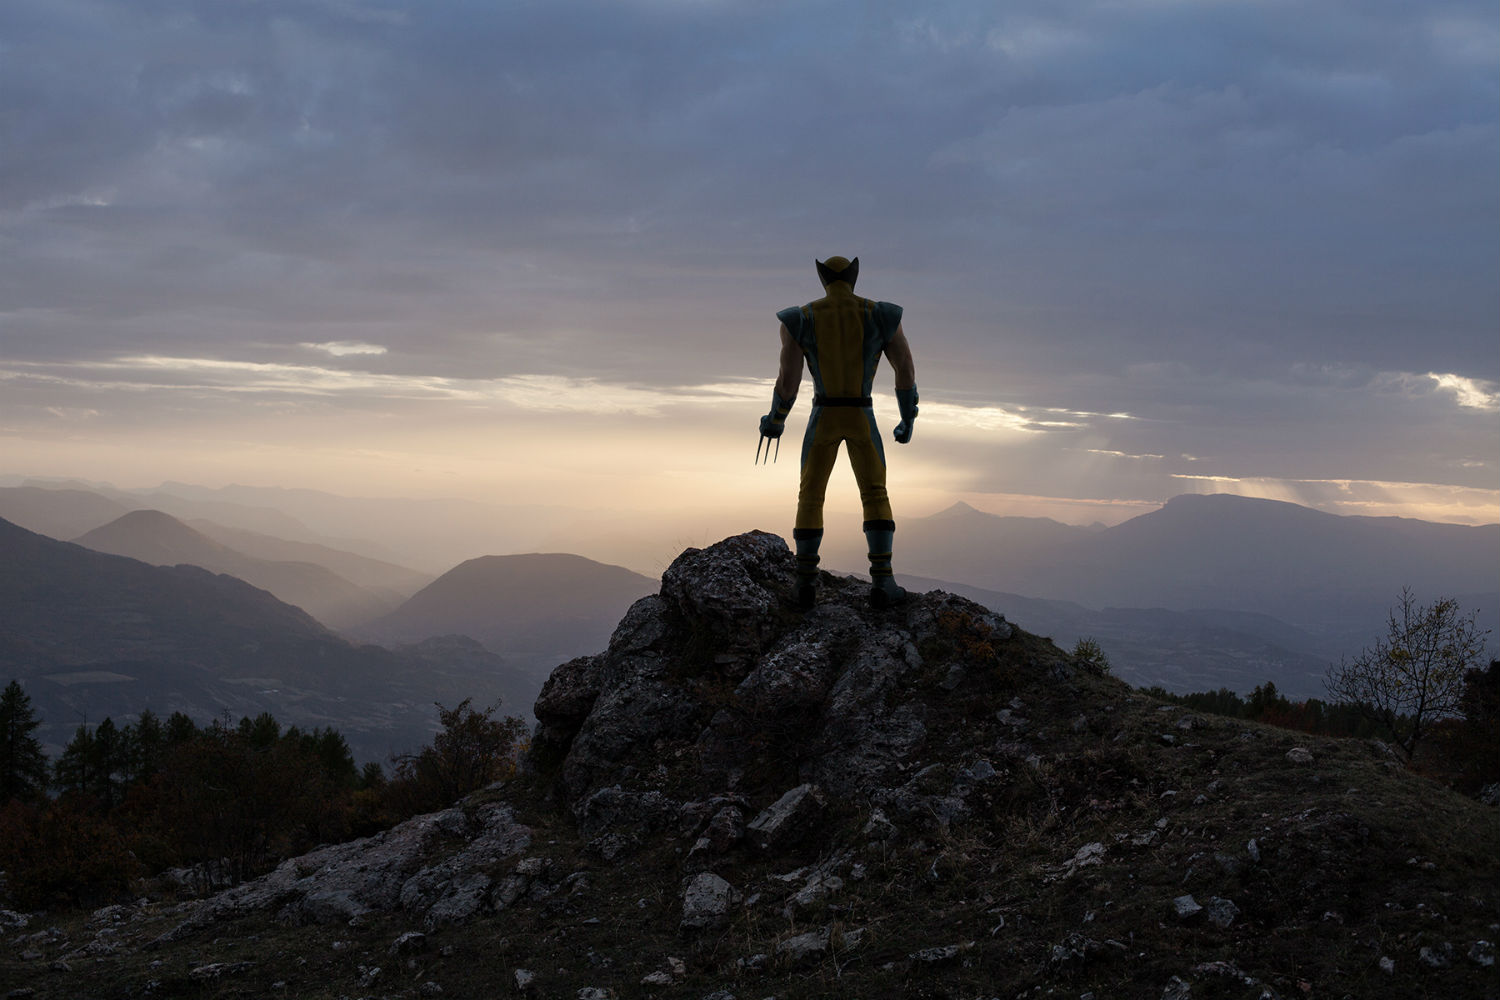 benoit lapray superheroes photography nature solitude wolverine